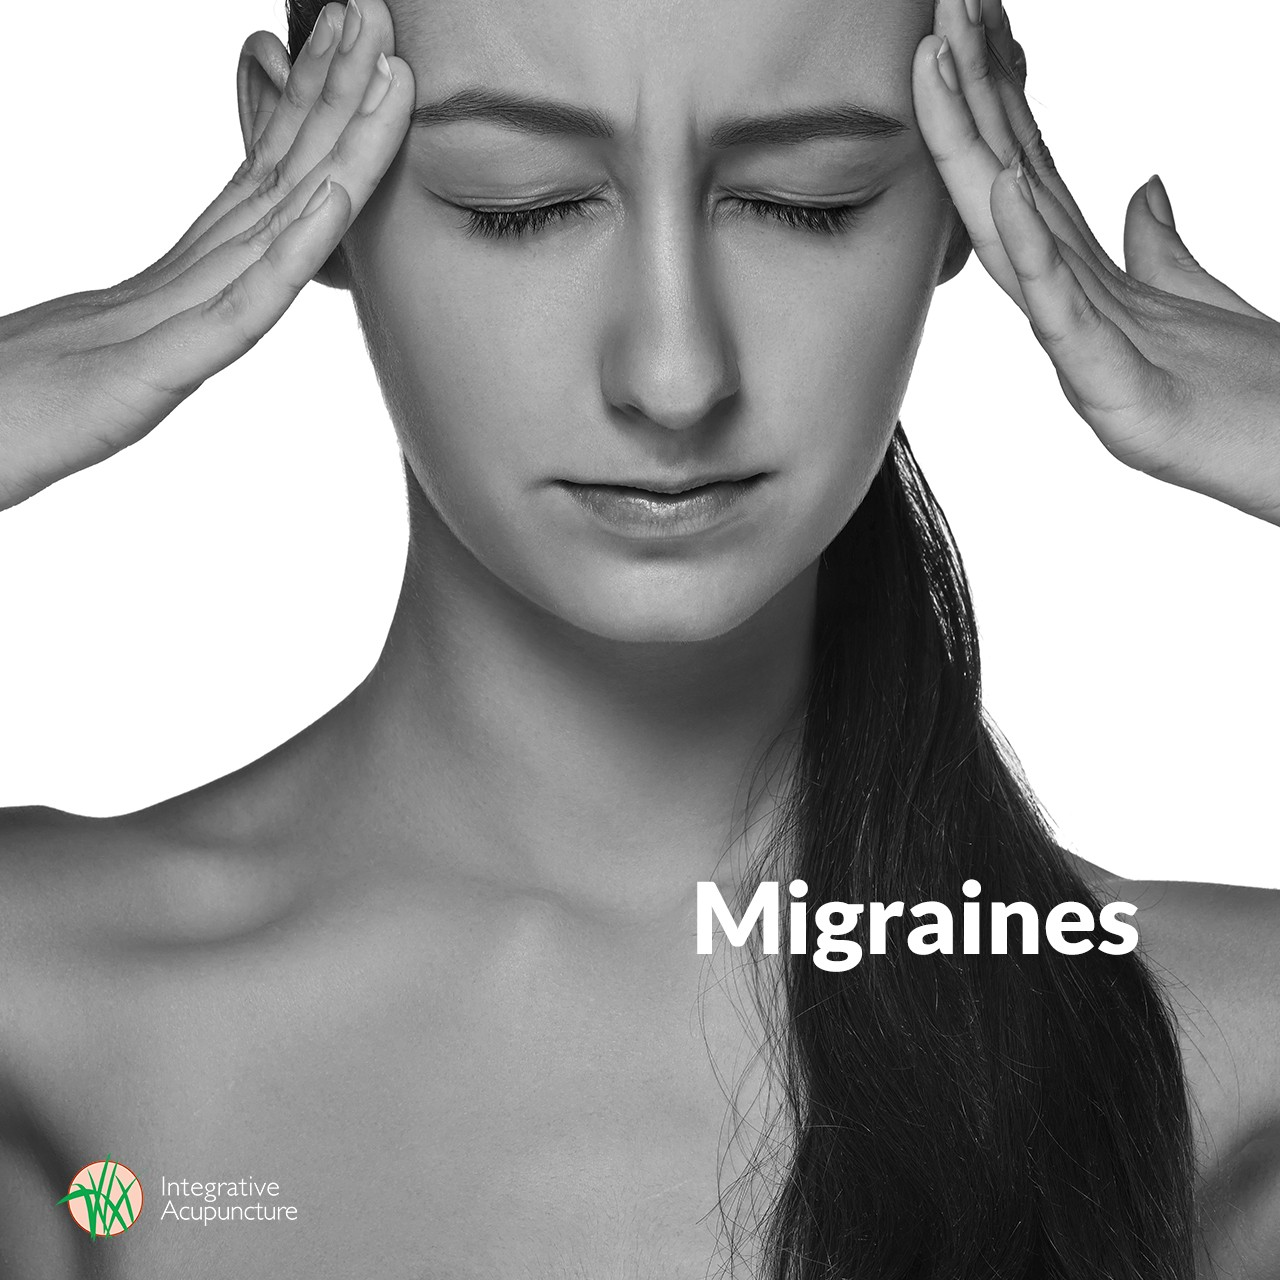 Stretches For Headaches: What Are The Best?